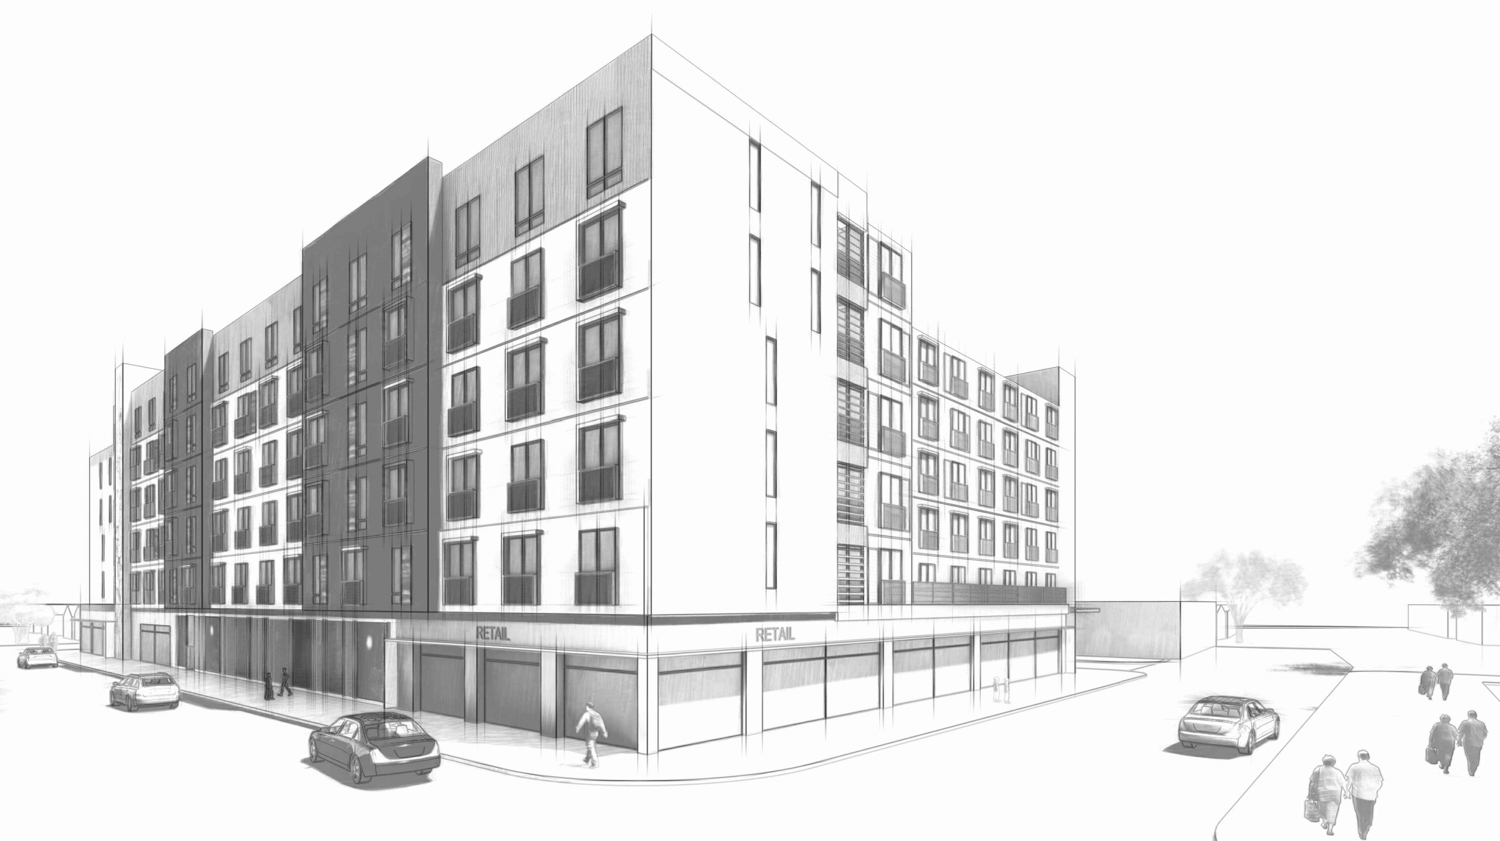 802 South 1st Street between East Virginia Street and South 1st Street, illustration via AO Architects